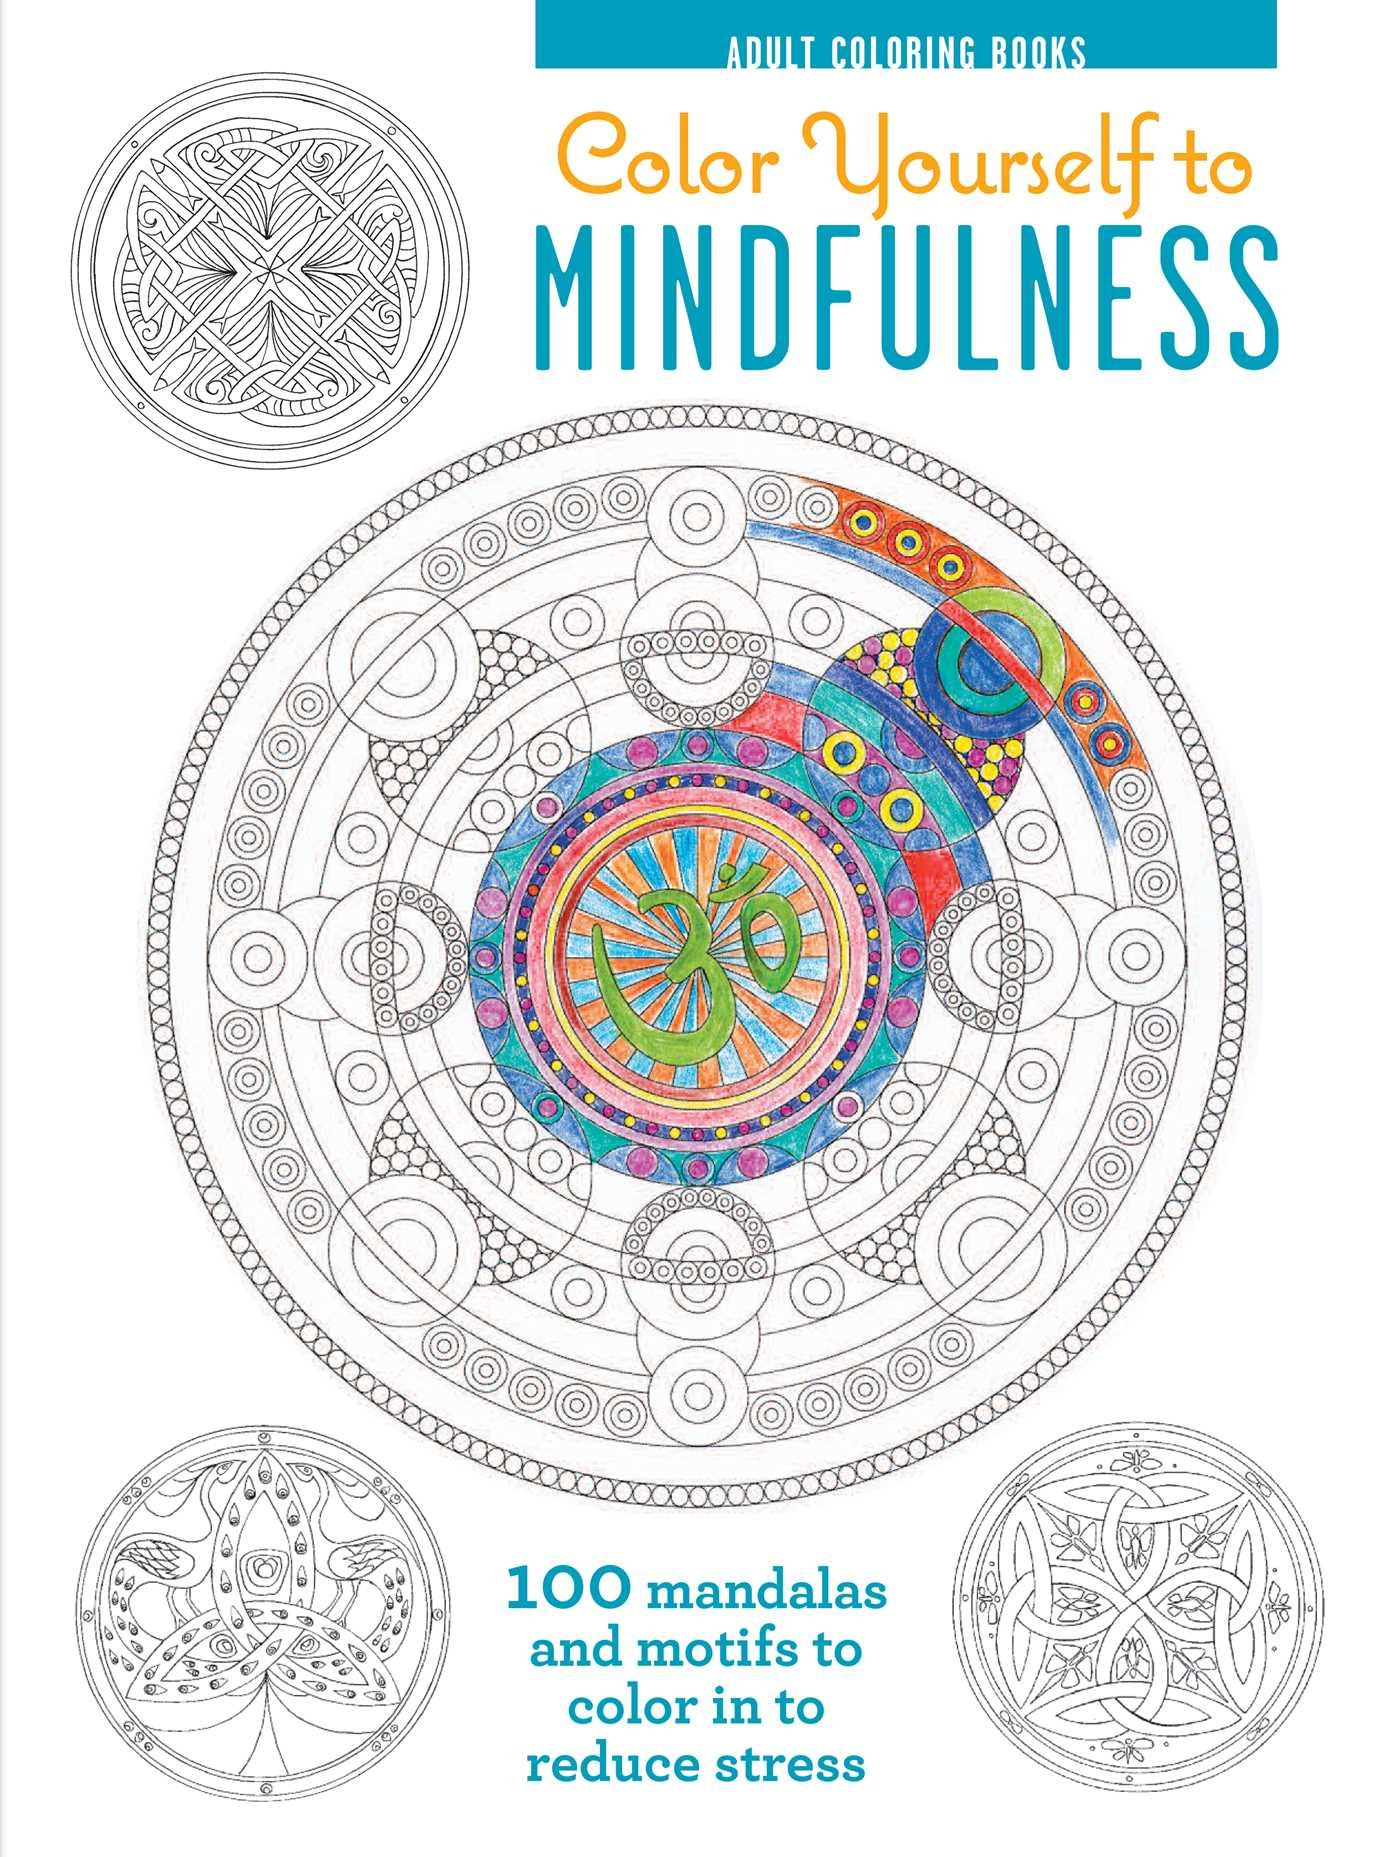 Unusual Best Coloring Books For Adults Tall Dr Who Coloring Book Round Jumbo Coloring Books Precious Moments Coloring Book Youthful Cool Coloring Books For Adults OrangeAlphabet Coloring Book Color Yourself To Mindfulness: 100 Mandalas And Motifs To Color ..